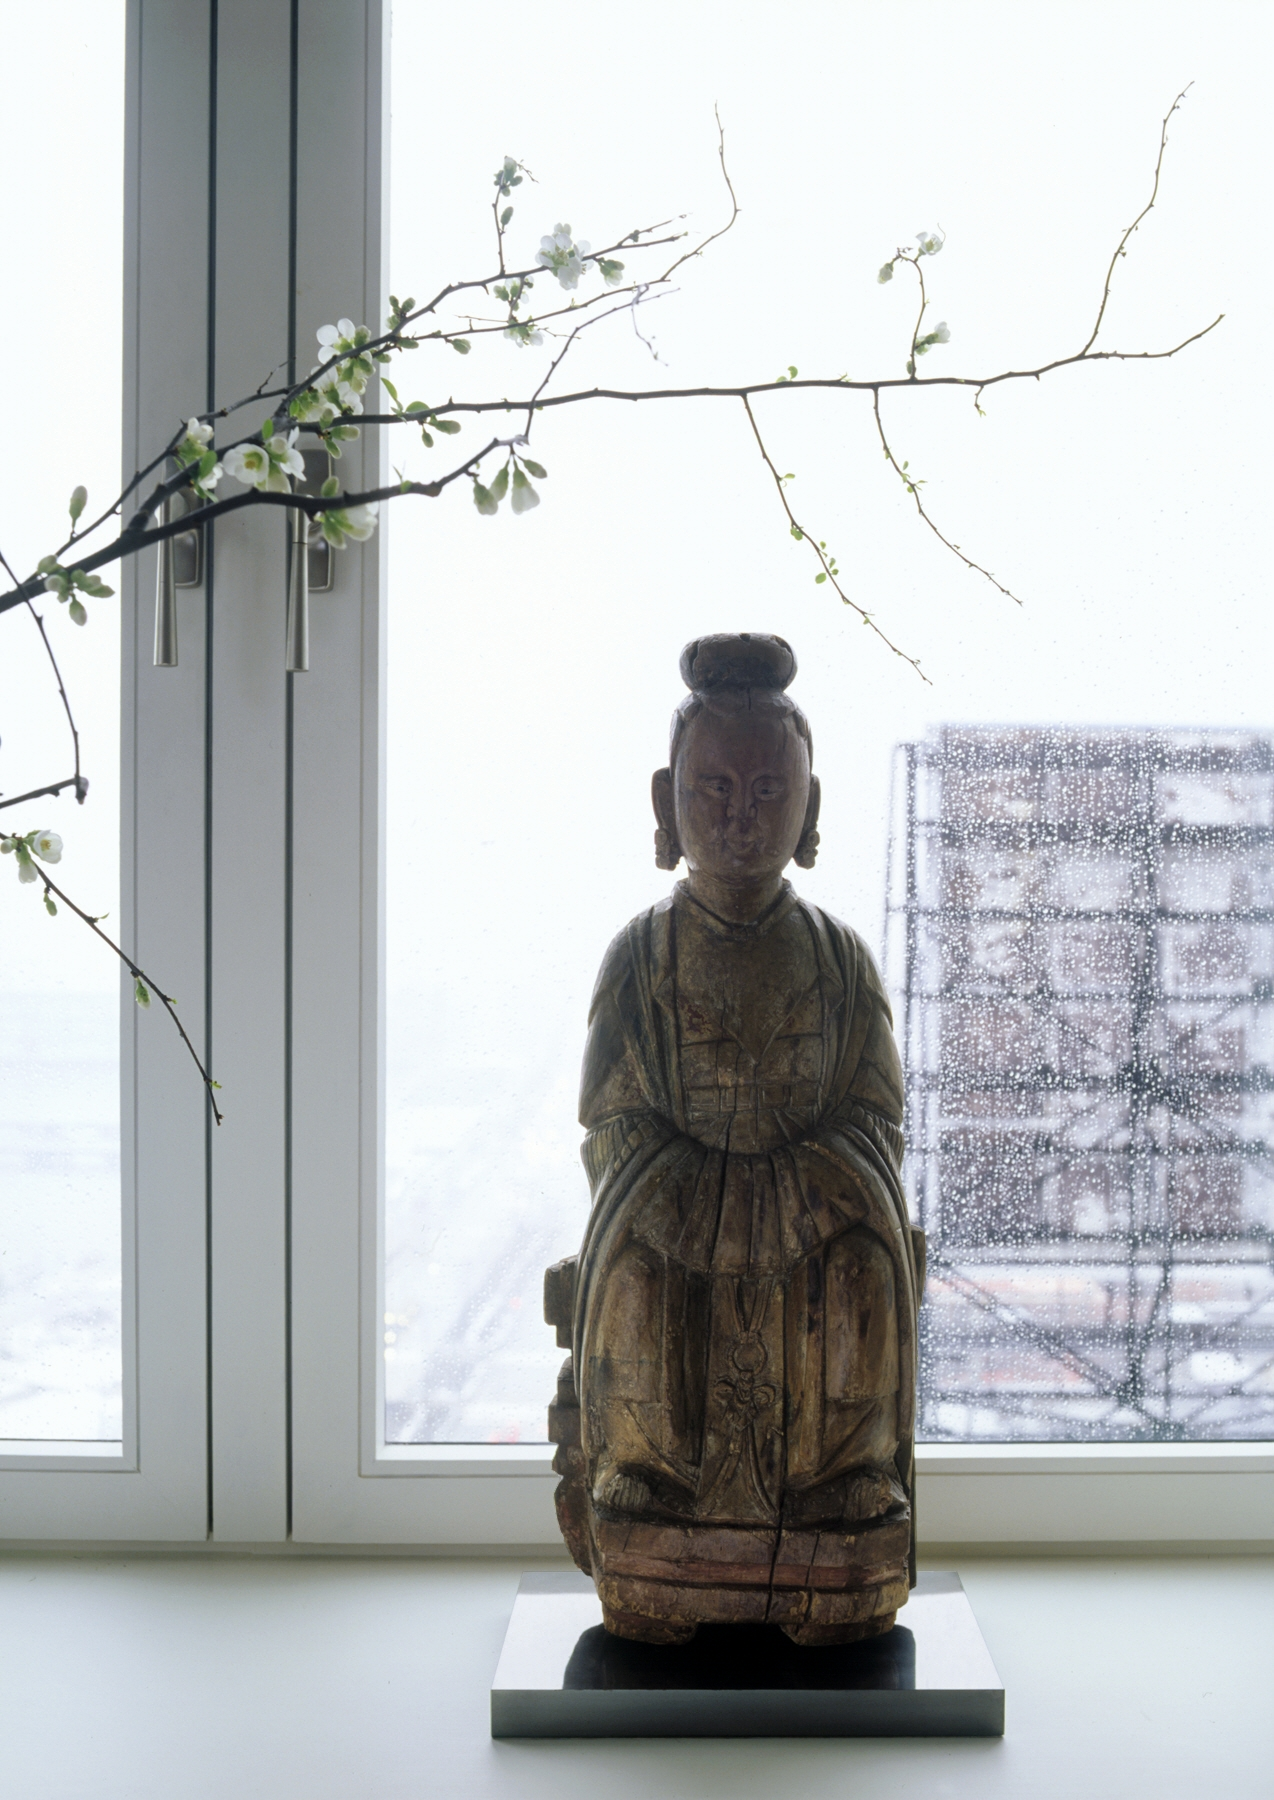 Laight Apartment Window and Statue